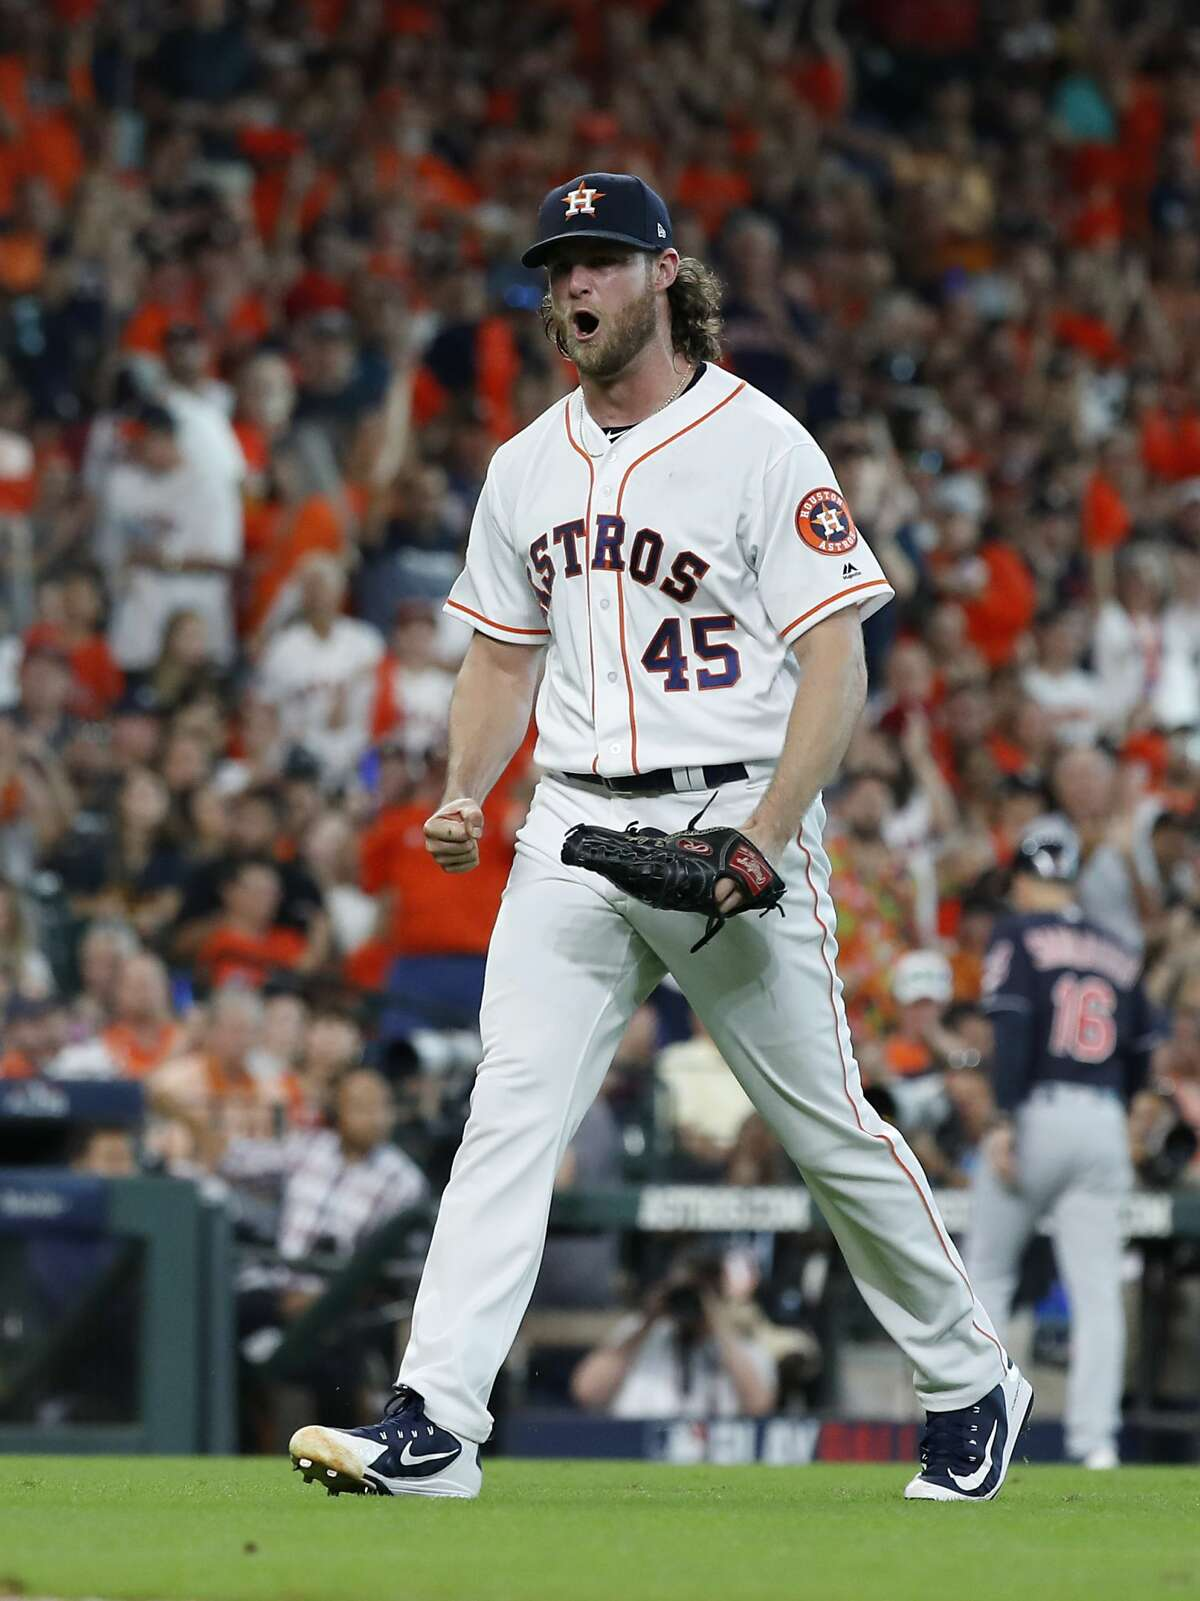 Houston Astros pitcher Gerrit Cole (45) reacts after striking out the final batter in the sixth inning of Game 2 of the American League Division Series at Minute Maid Park on Saturday, Oct. 6, 2018, in Houston.